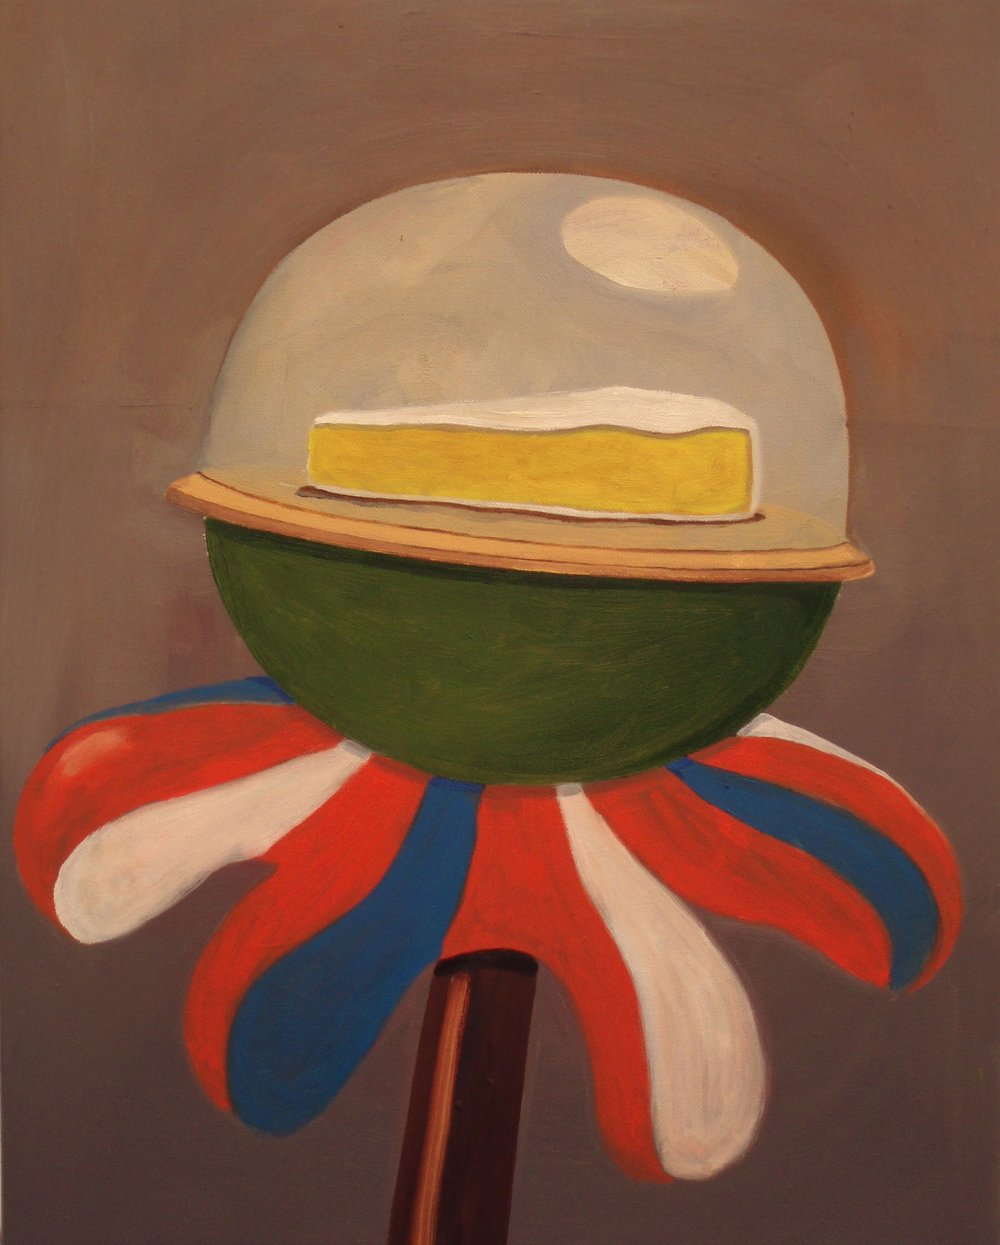 Sceptre  2008 Oil on Canvas, 50.5 x 40.5 cm